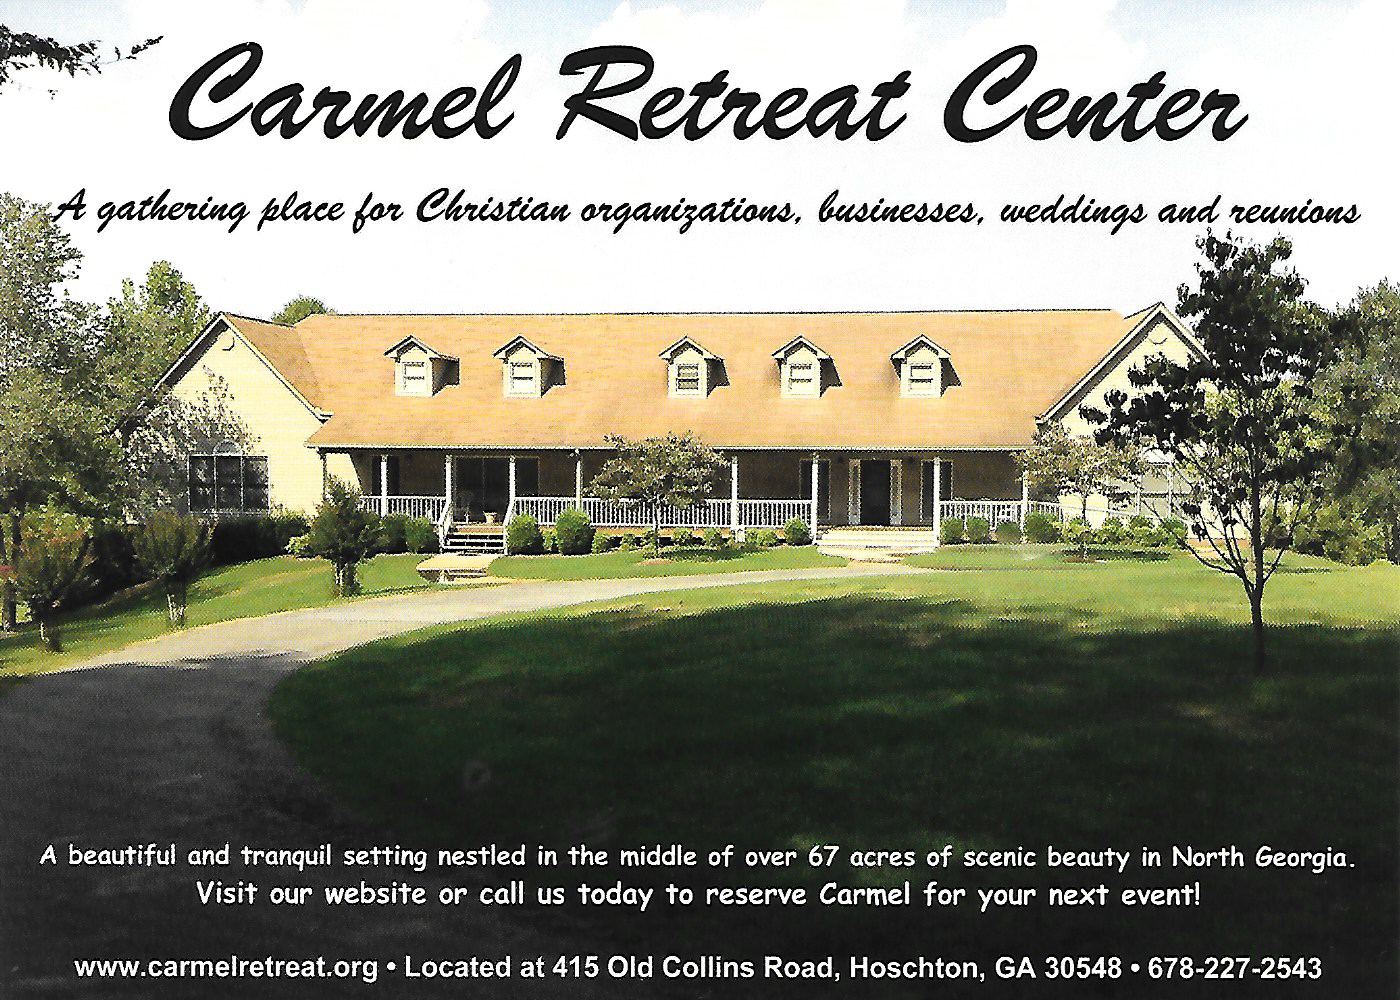 Carmel Retreat Center